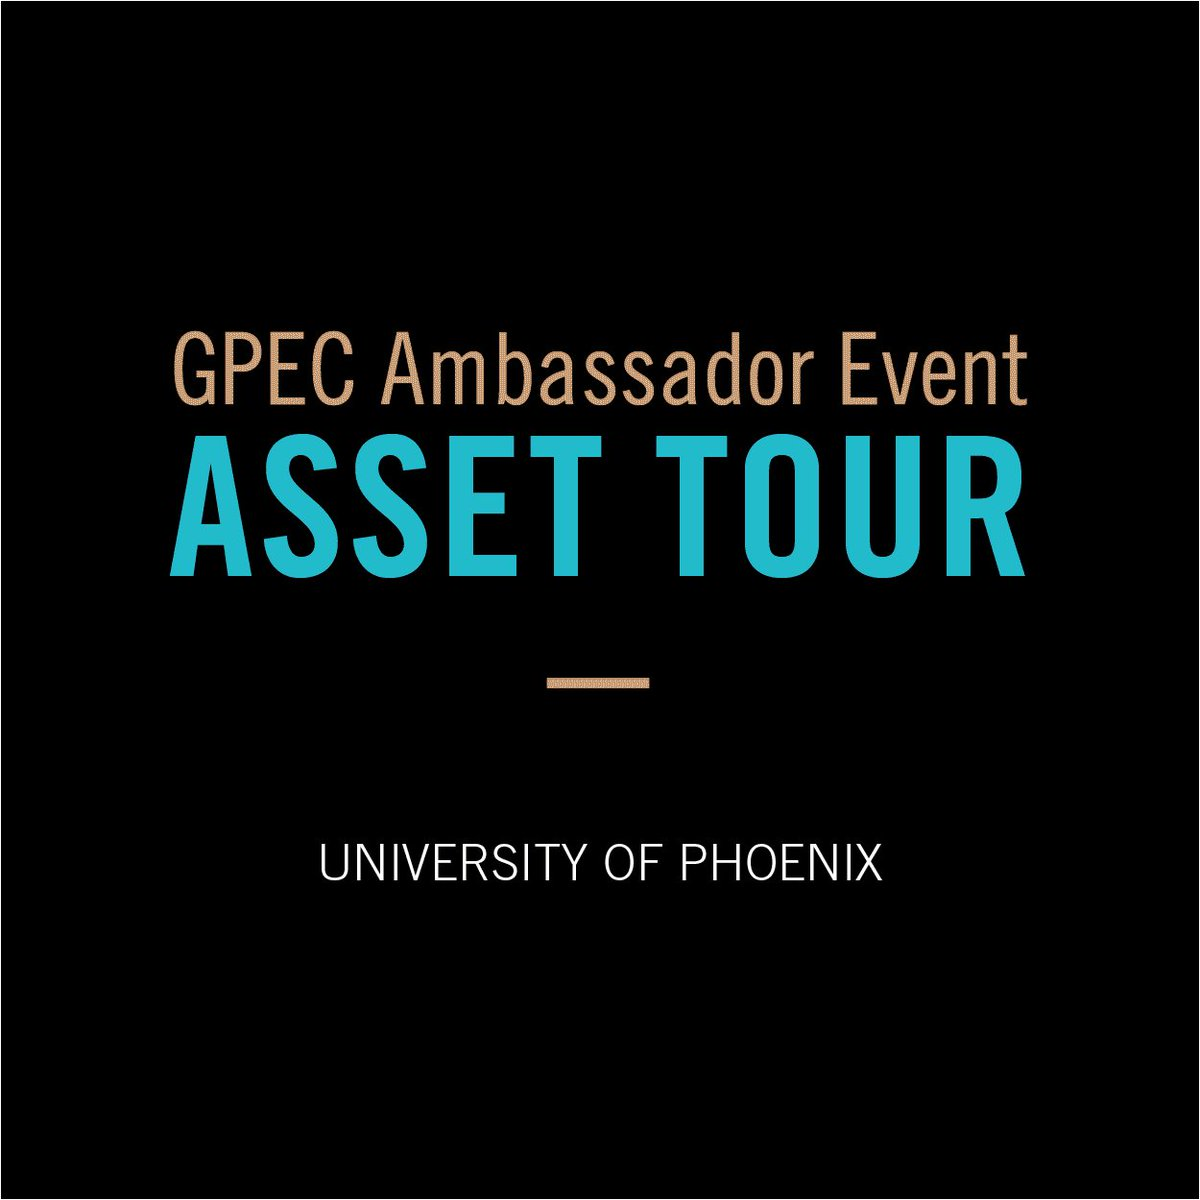 With 39 campuses around the U.S. including 3 in #GreaterPHX, @UOPX is using innovation to improve learning outcomes & make higher education attainable for working professionals. #GPECAmbassadors toured the campus, which offers smaller classes, an interactive environment and more.